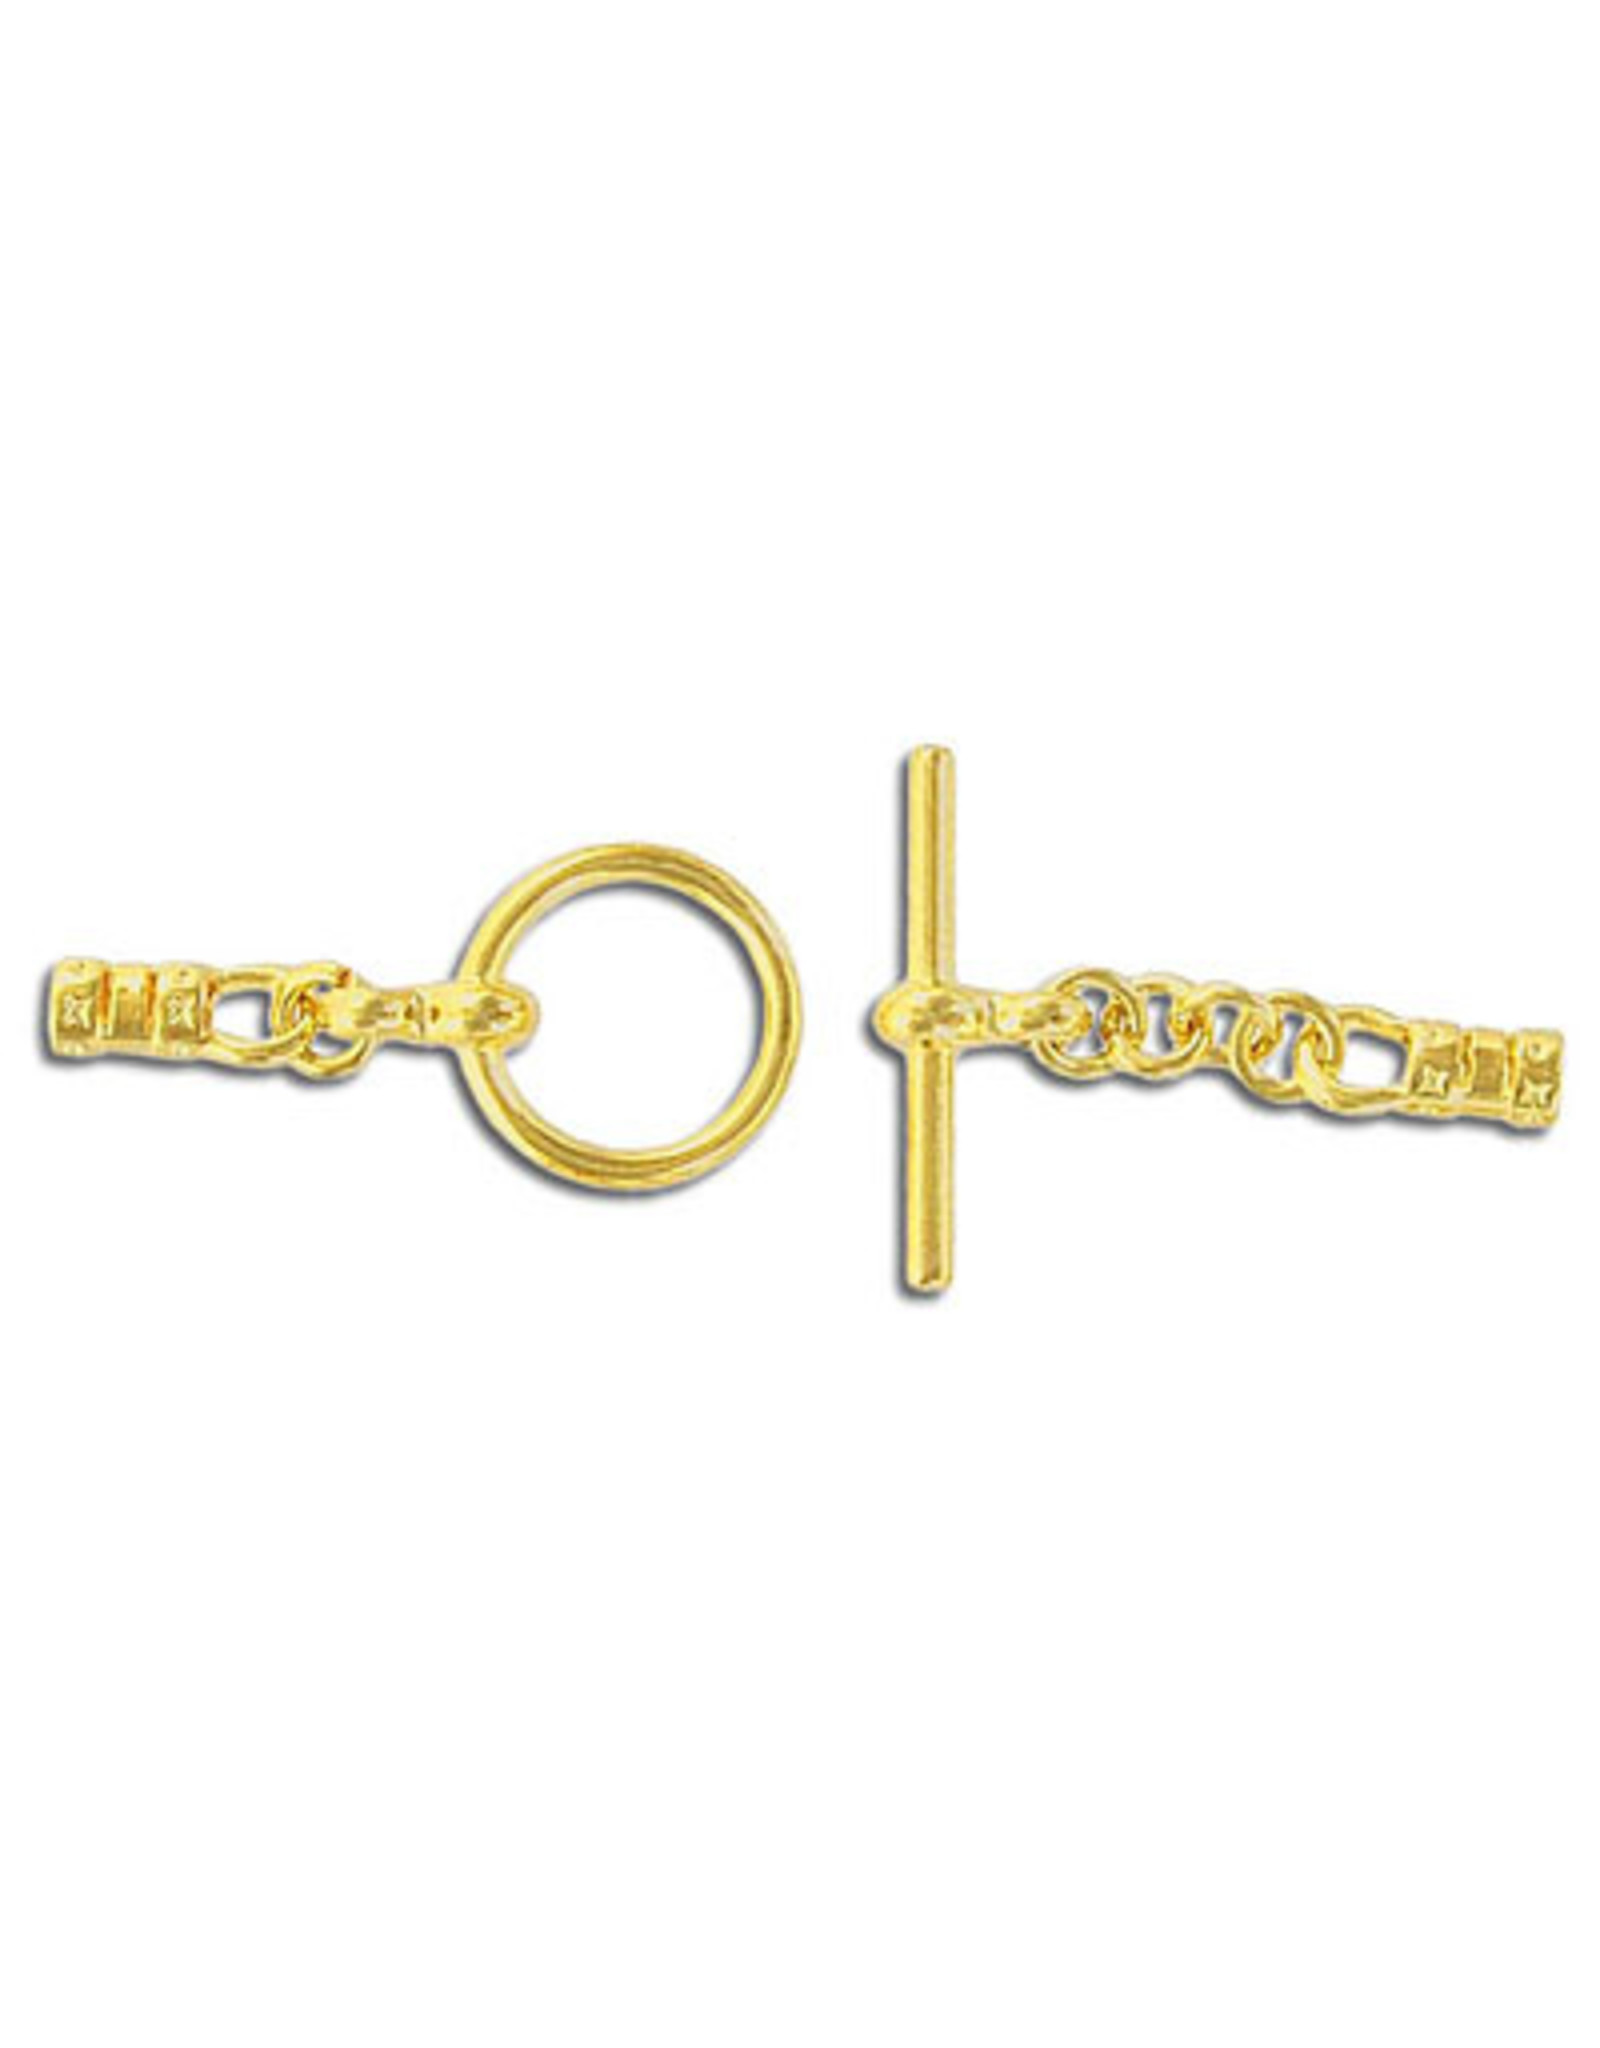 Toggle Clasp 12mm Round with 3mm Crimp Ends Gold  NF  x10